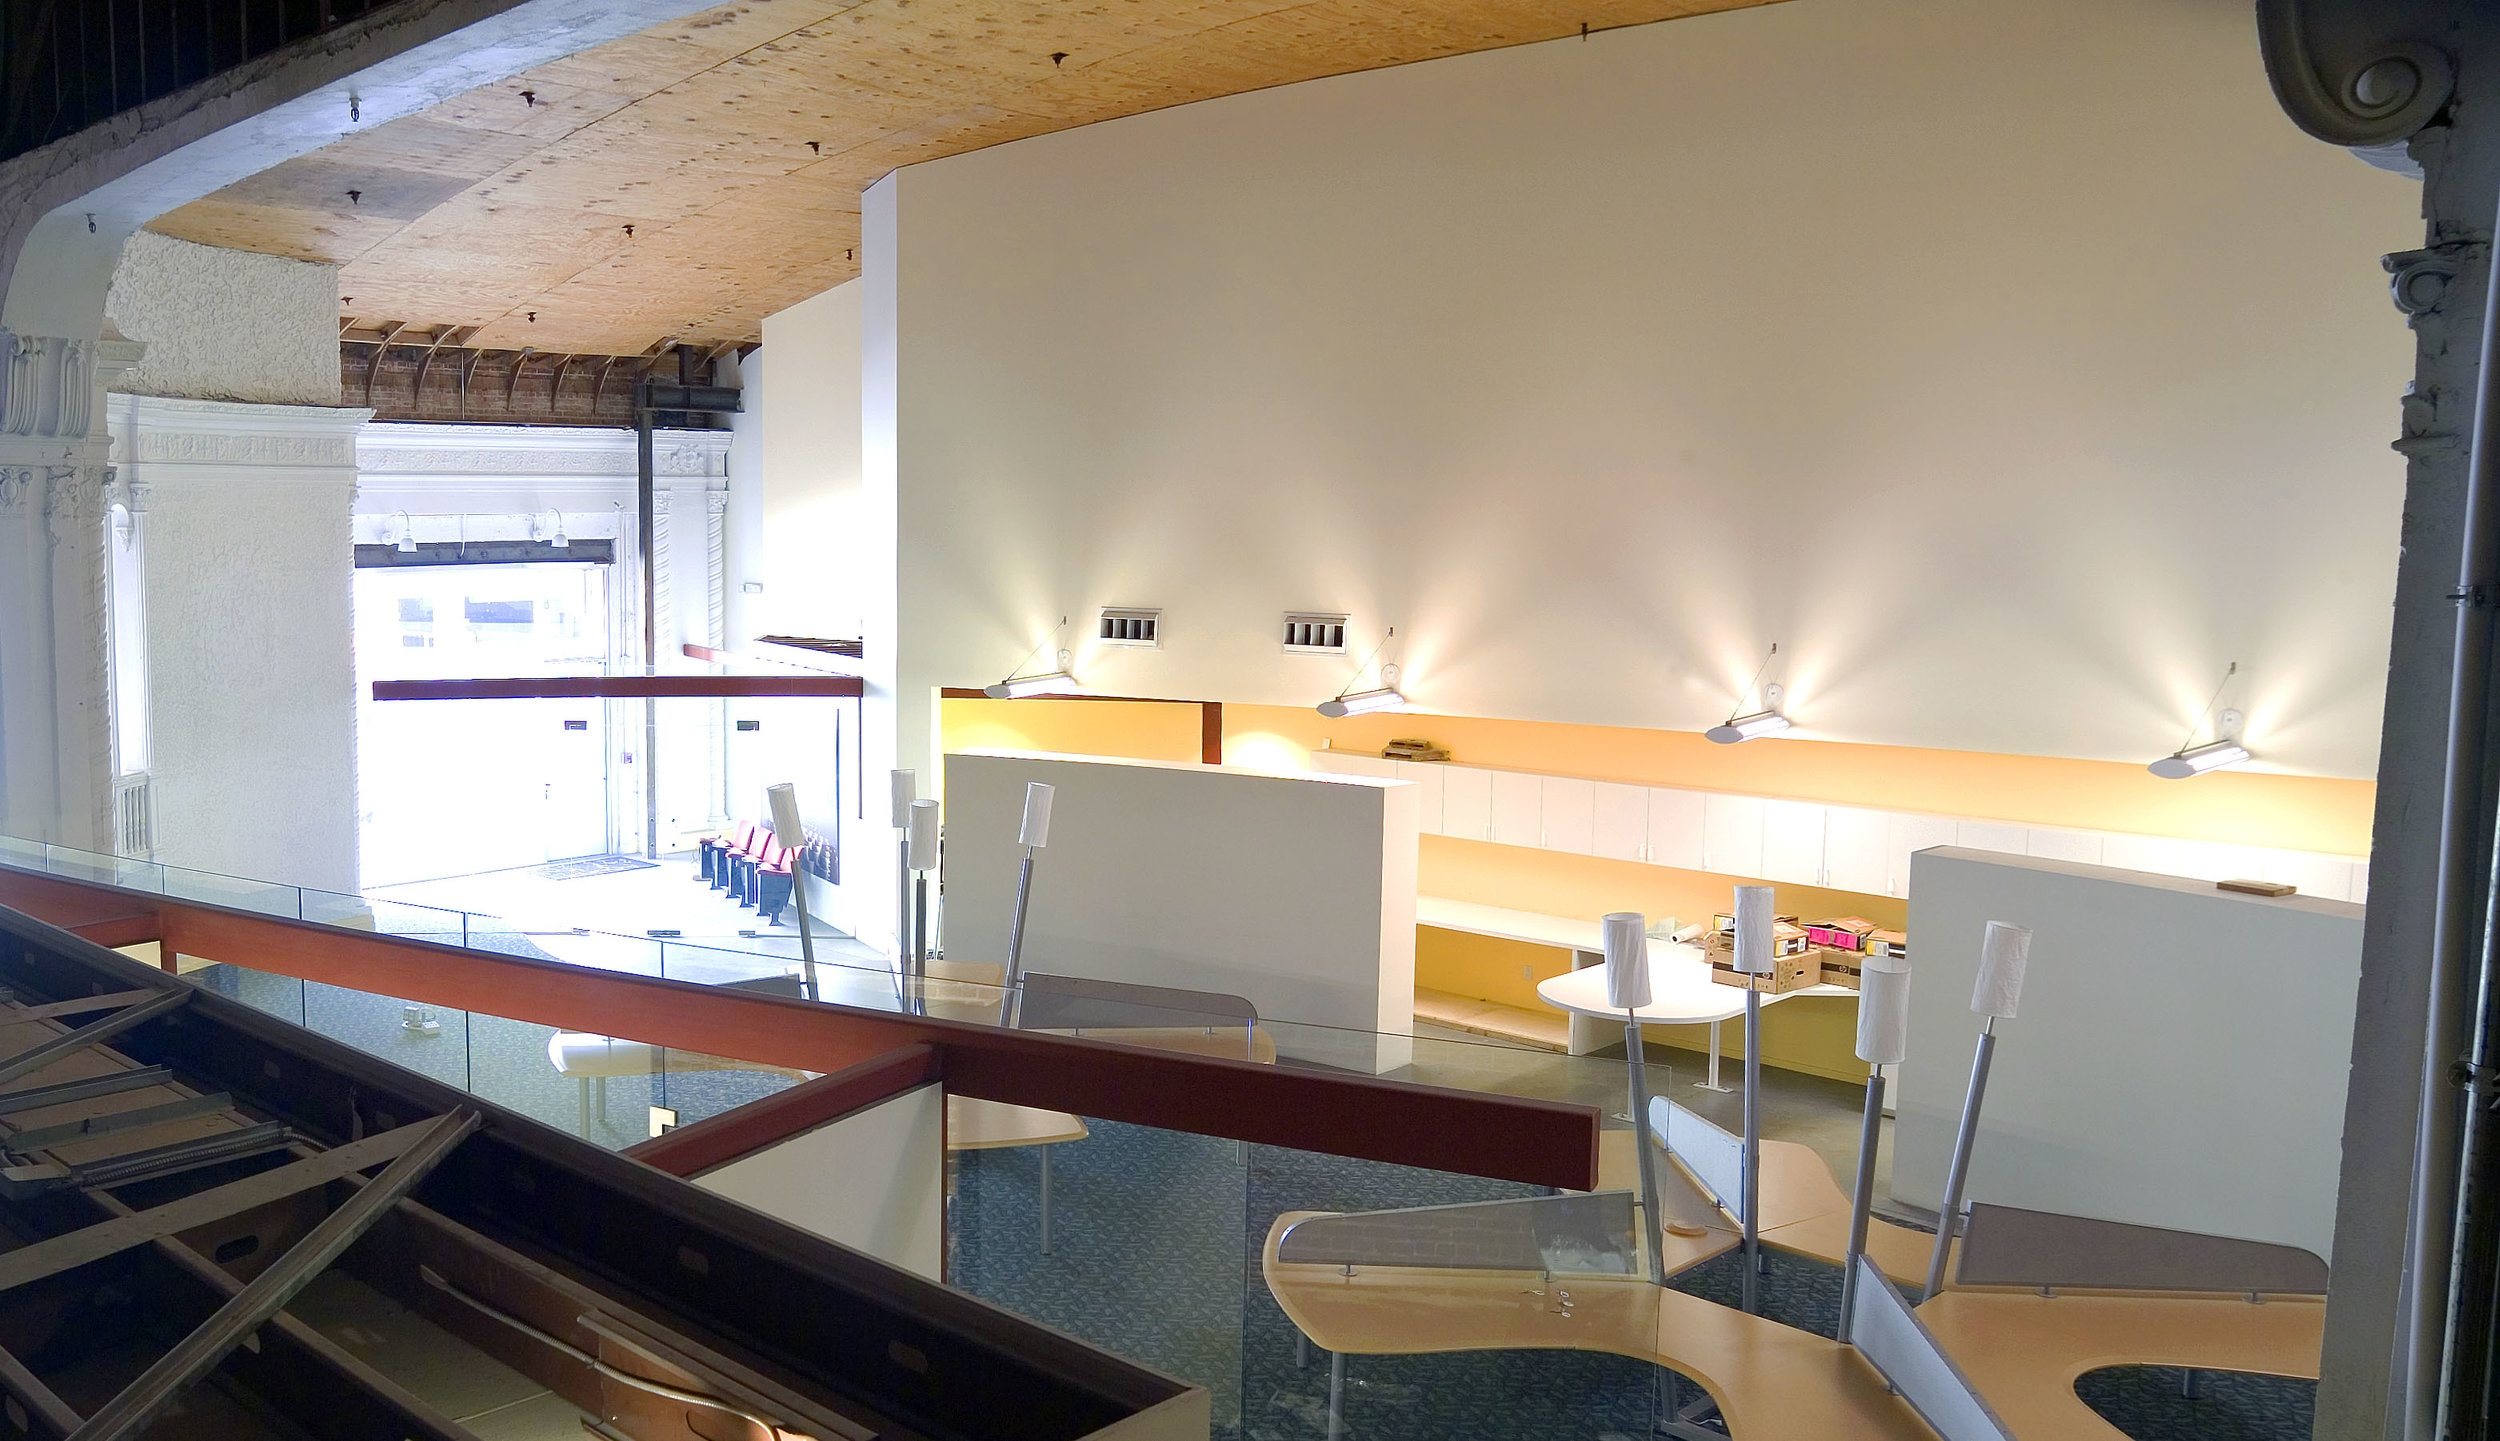 - Overview of the office area